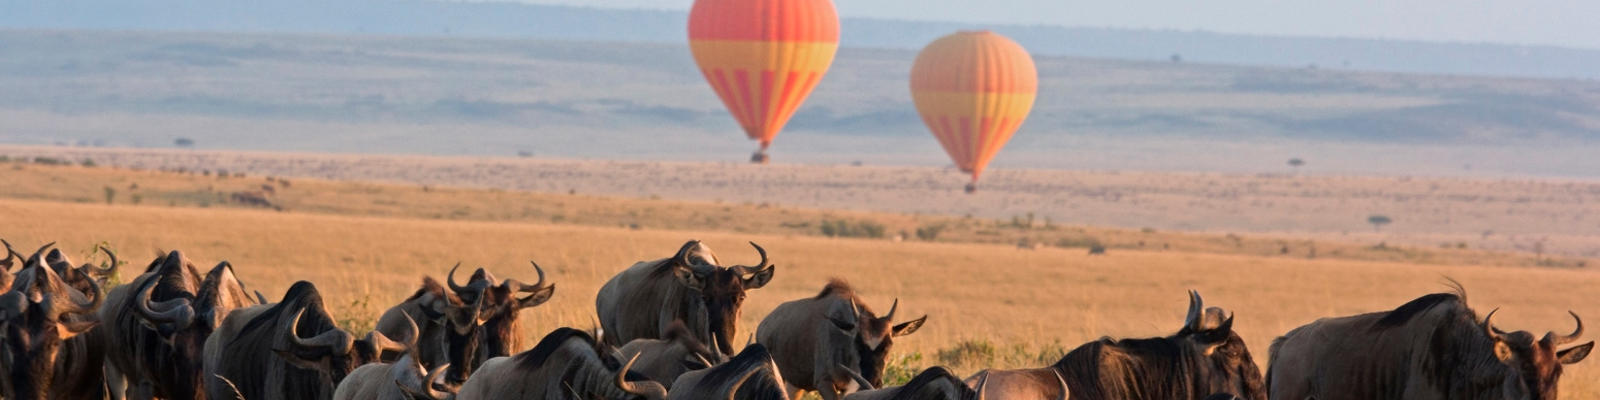 A herd of wildebeest walking across the desert with hot air balloons in the background